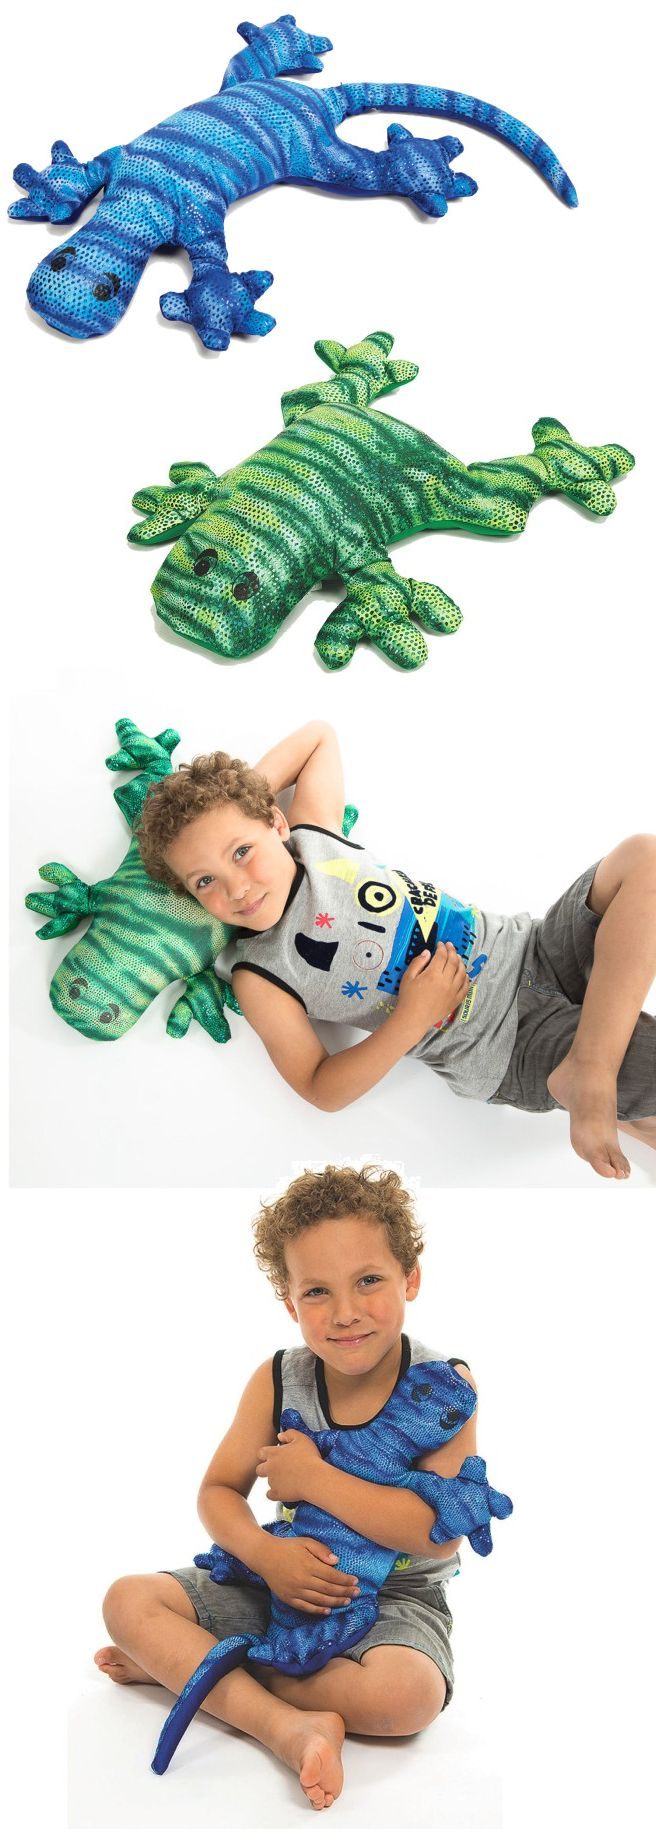 NEW Manimo™ Weighted Blue Lizard and Green Frog provide deep pressure and weight that ease muscle tension and help with calming and relaxing. The non-toxic plastic pellets inside provide gentle tactile stimulation.